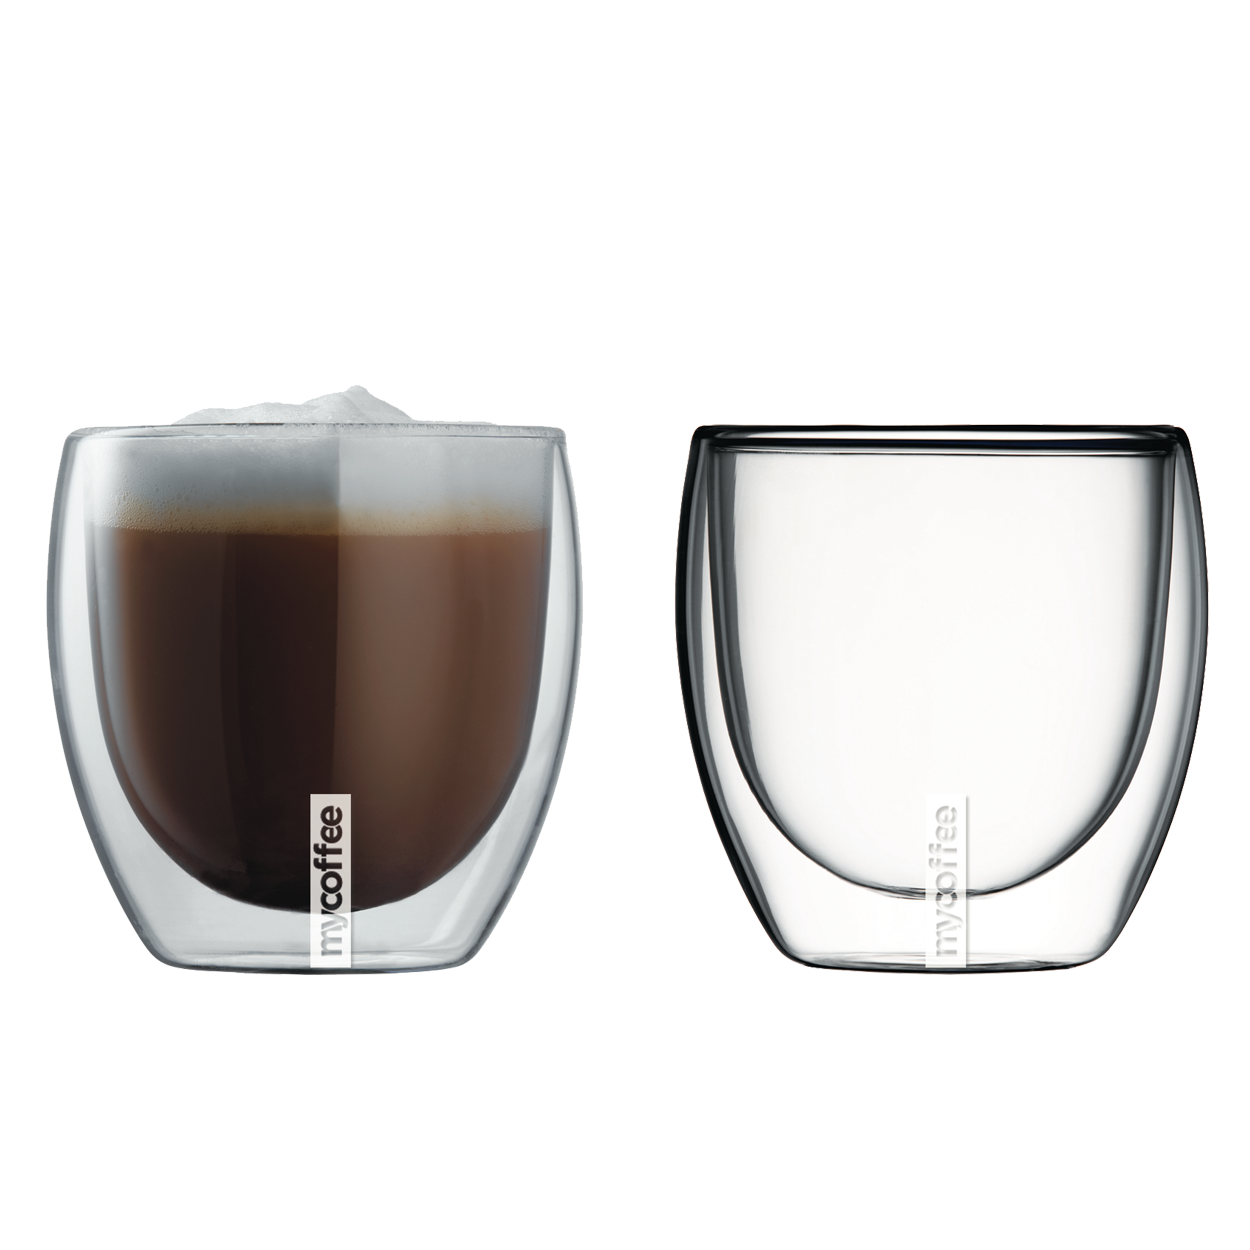 8.5 fl.oz./250ml  Double Wall Cappuccino Glasses